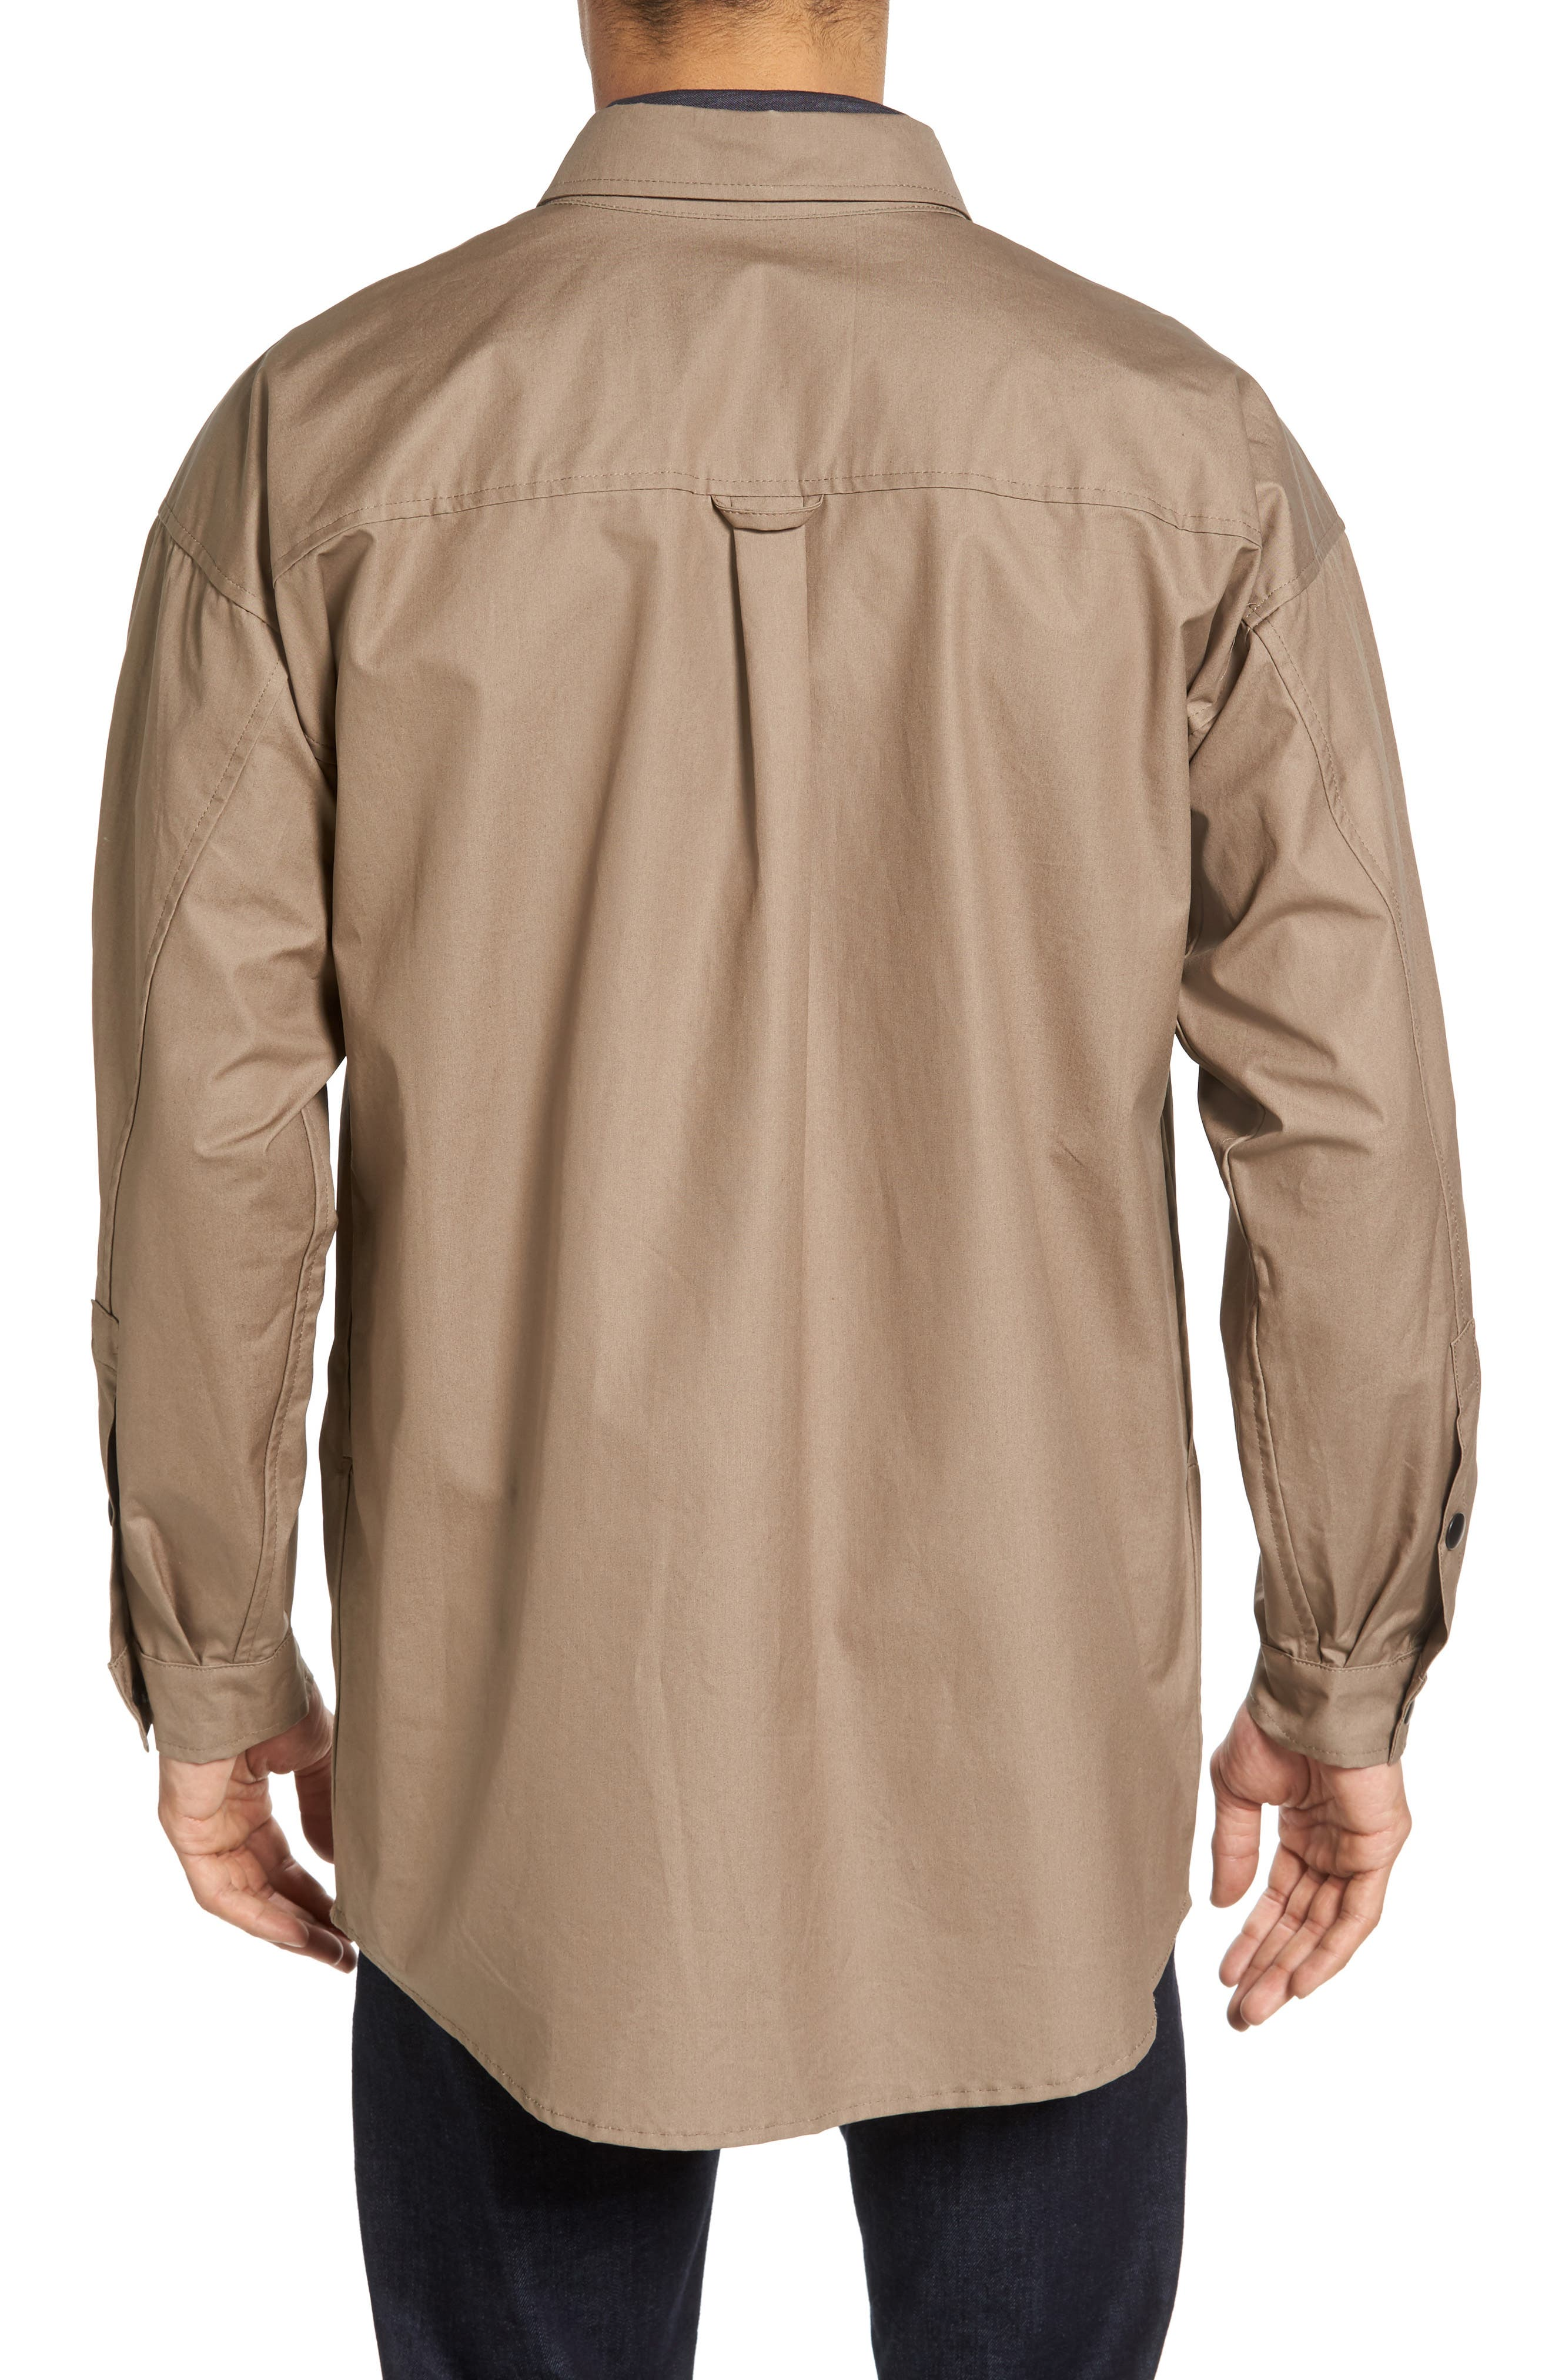 Lerum Relaxed Fit Shirt Jacket,                             Alternate thumbnail 4, color,